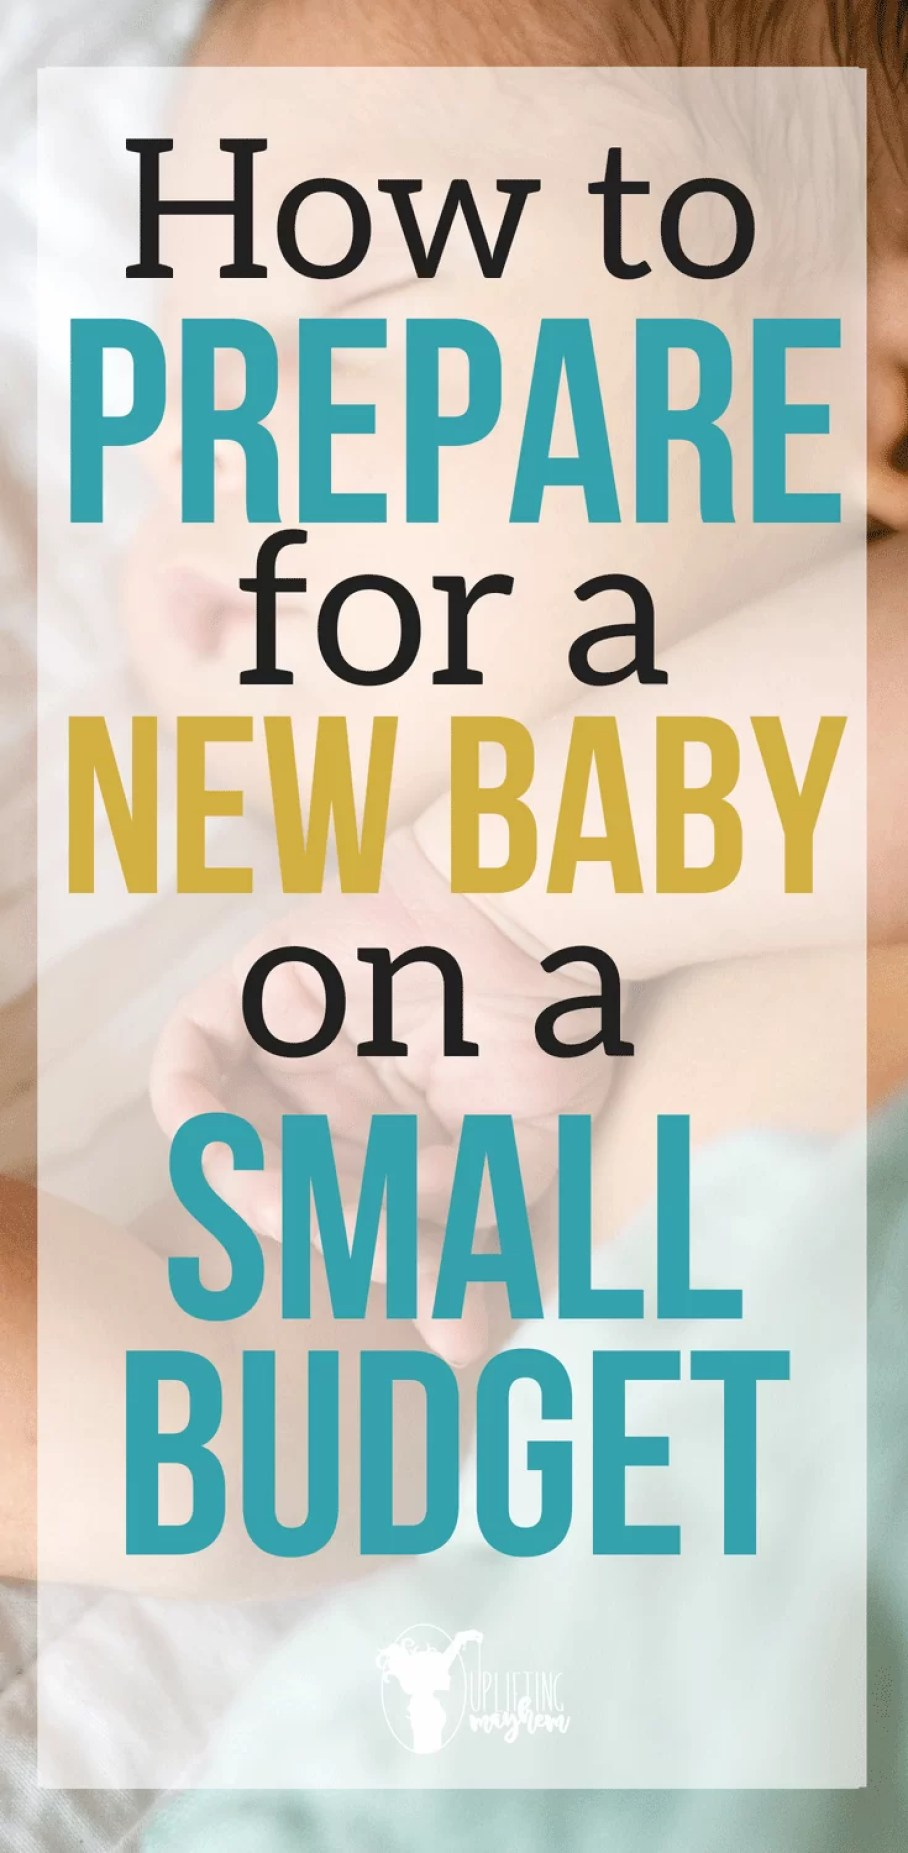 Where do you start when you need a budget for a new baby? Great tips to guide you on budgeting and saving money for your new baby!